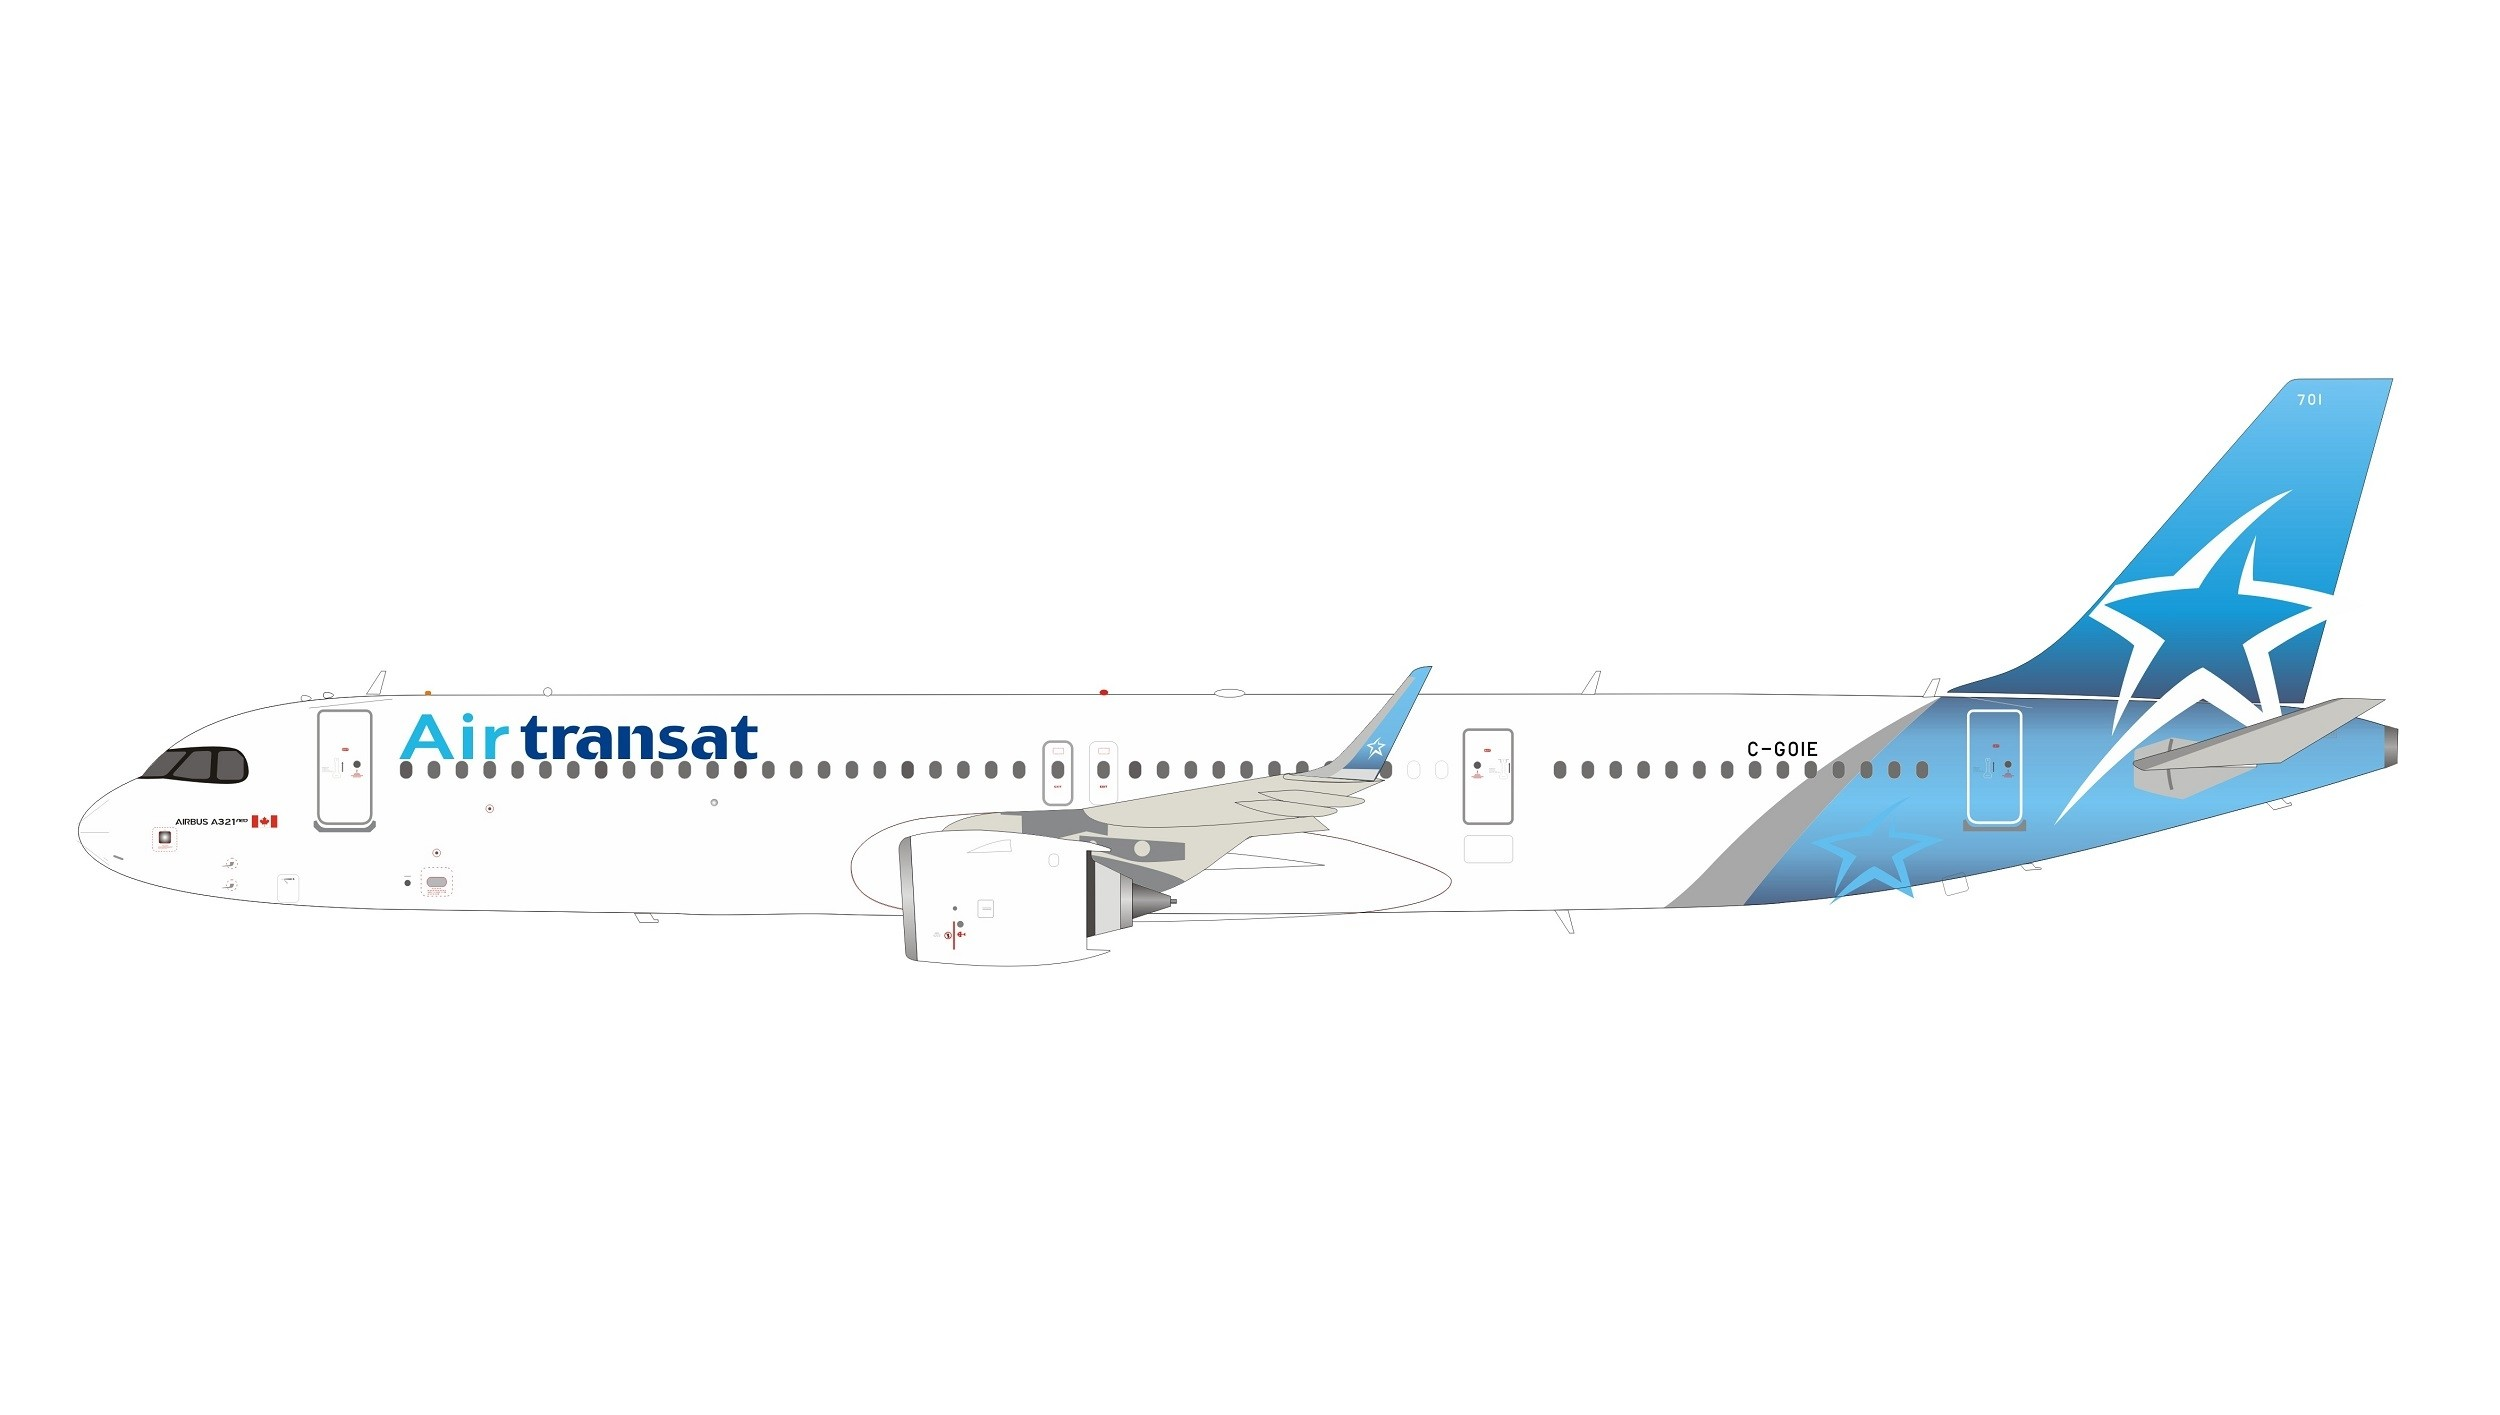 Air Transat Airbus A321neo C Goie With Stand Inflight If321ts1219 Scale 1 200 Eztoys Diecast Models And Collectibles